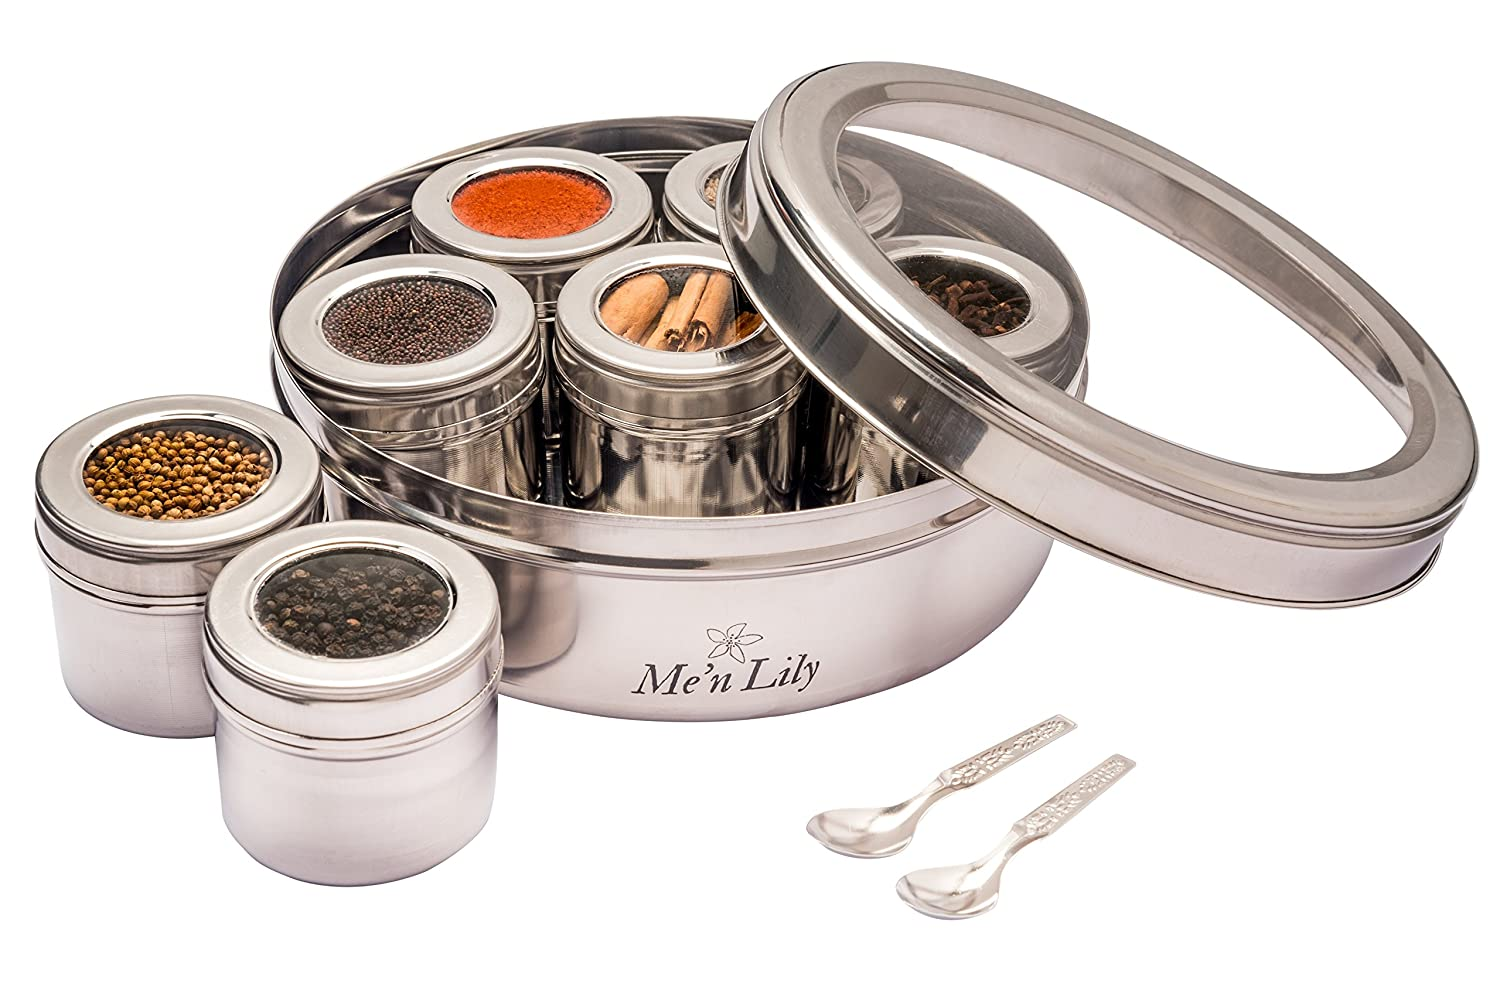 Stainless Steel Masala Dabba or Indian Spice or Tea Box with 7 containers and see through Lids Krish 7.11767E+11